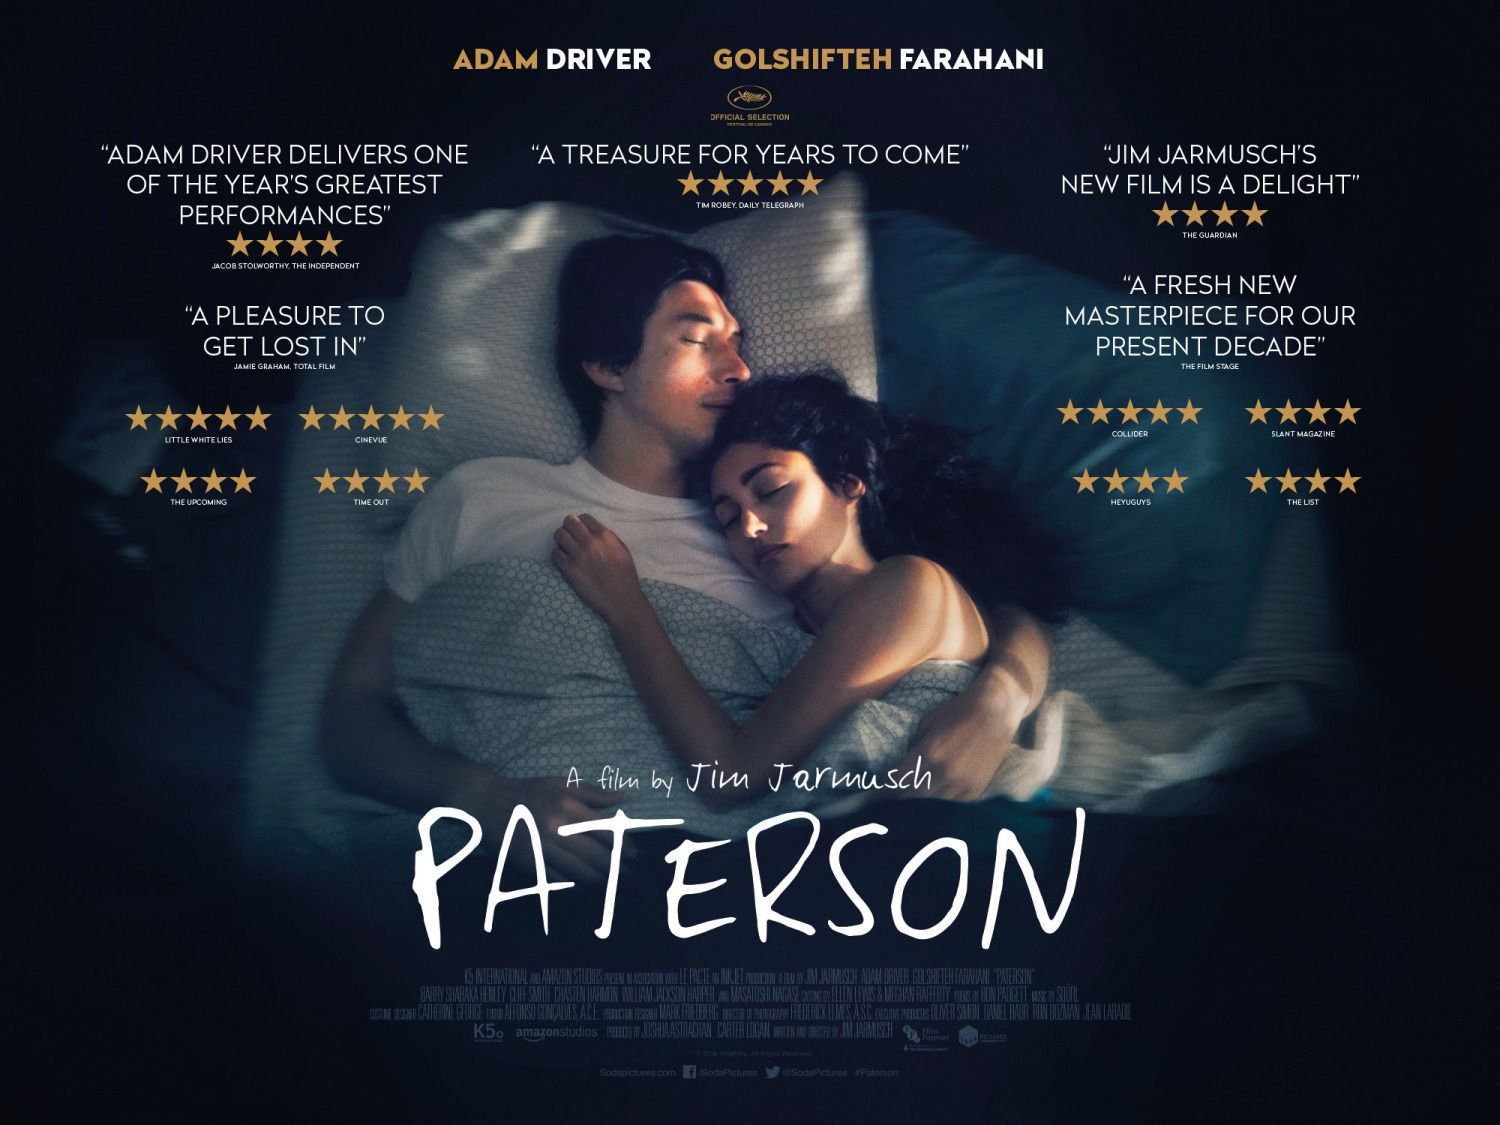 paterson_ver3_xlg.jpg